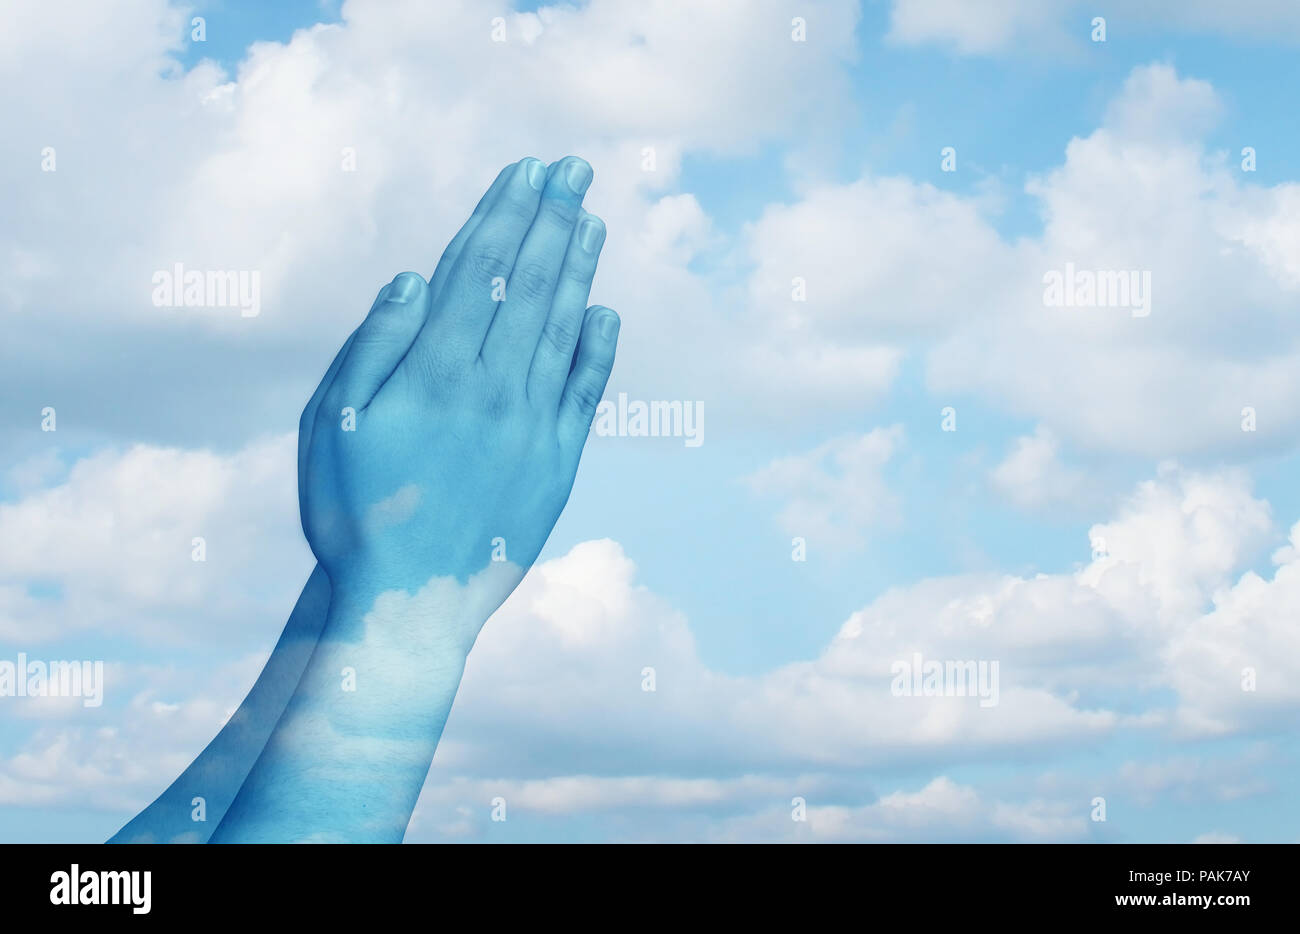 Praying and spiritual life concept as hands in worship on a sky background as a symbol for belief and spirituality in religion. - Stock Image